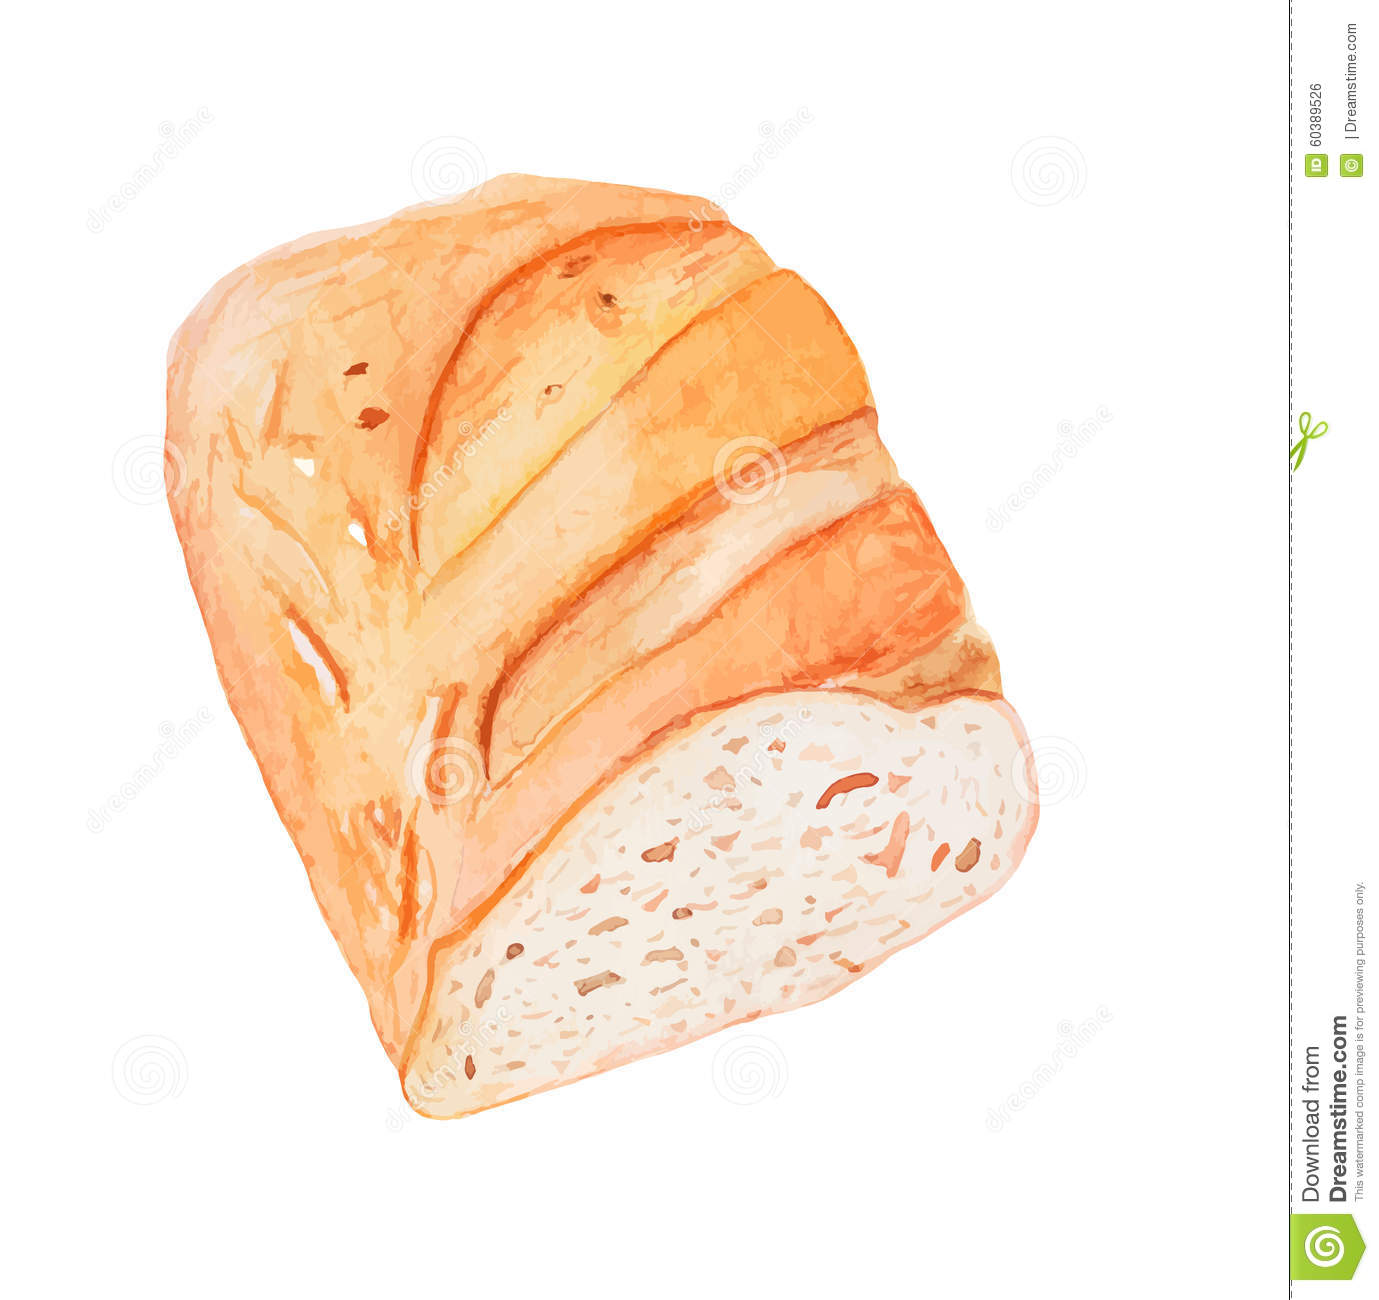 Sliced Loaf Of White Bread Vector Watercolor Painting